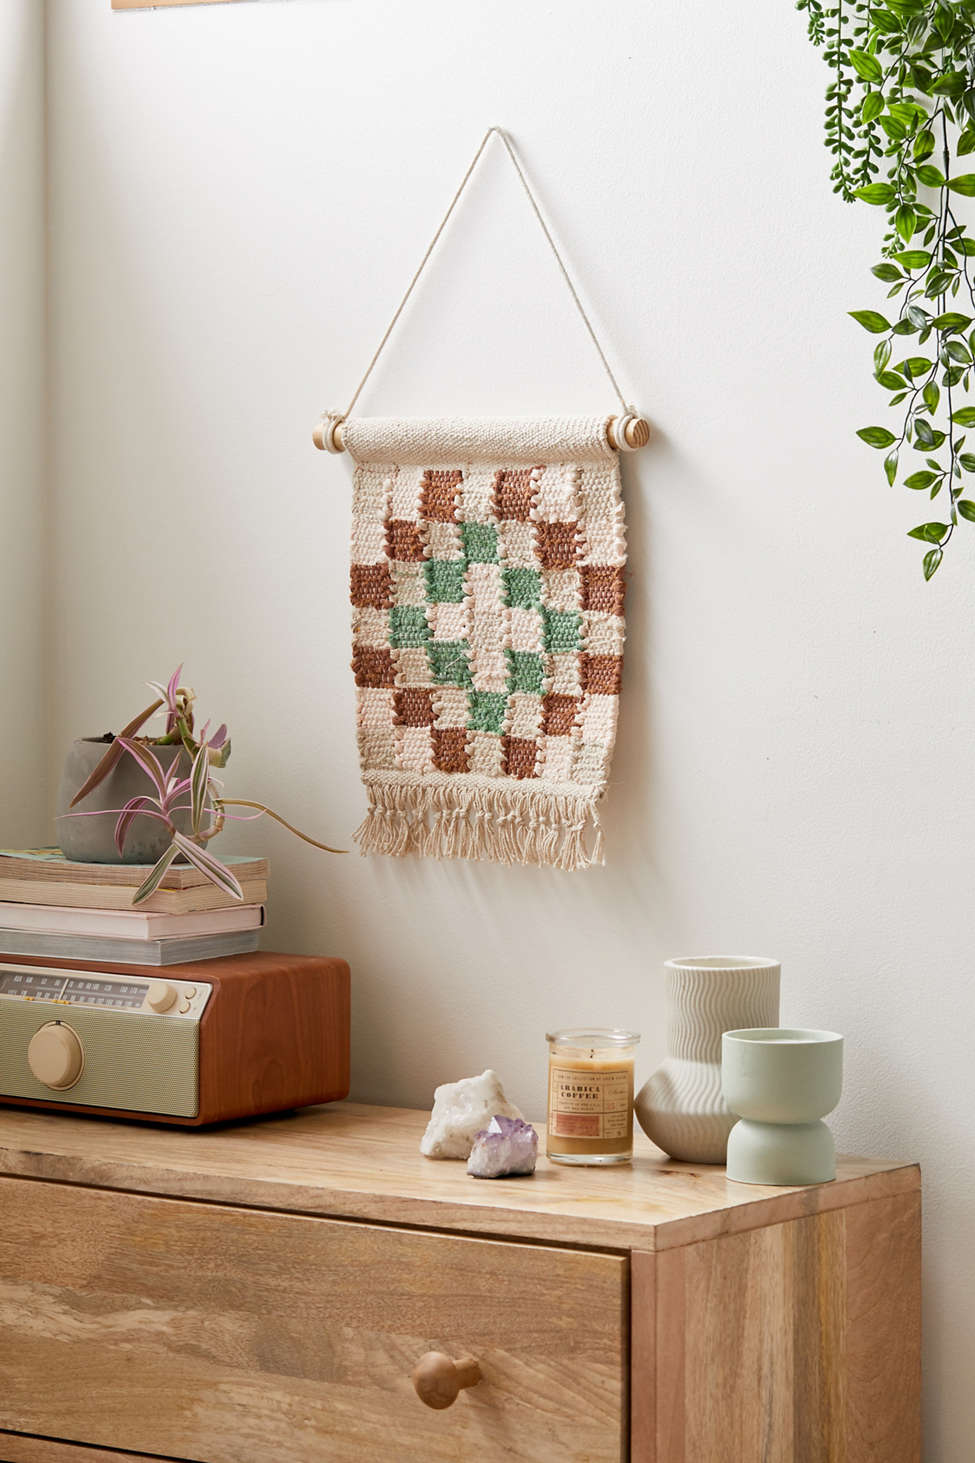 Woven Checkerboard Wall Hanging | Urban Outfitters